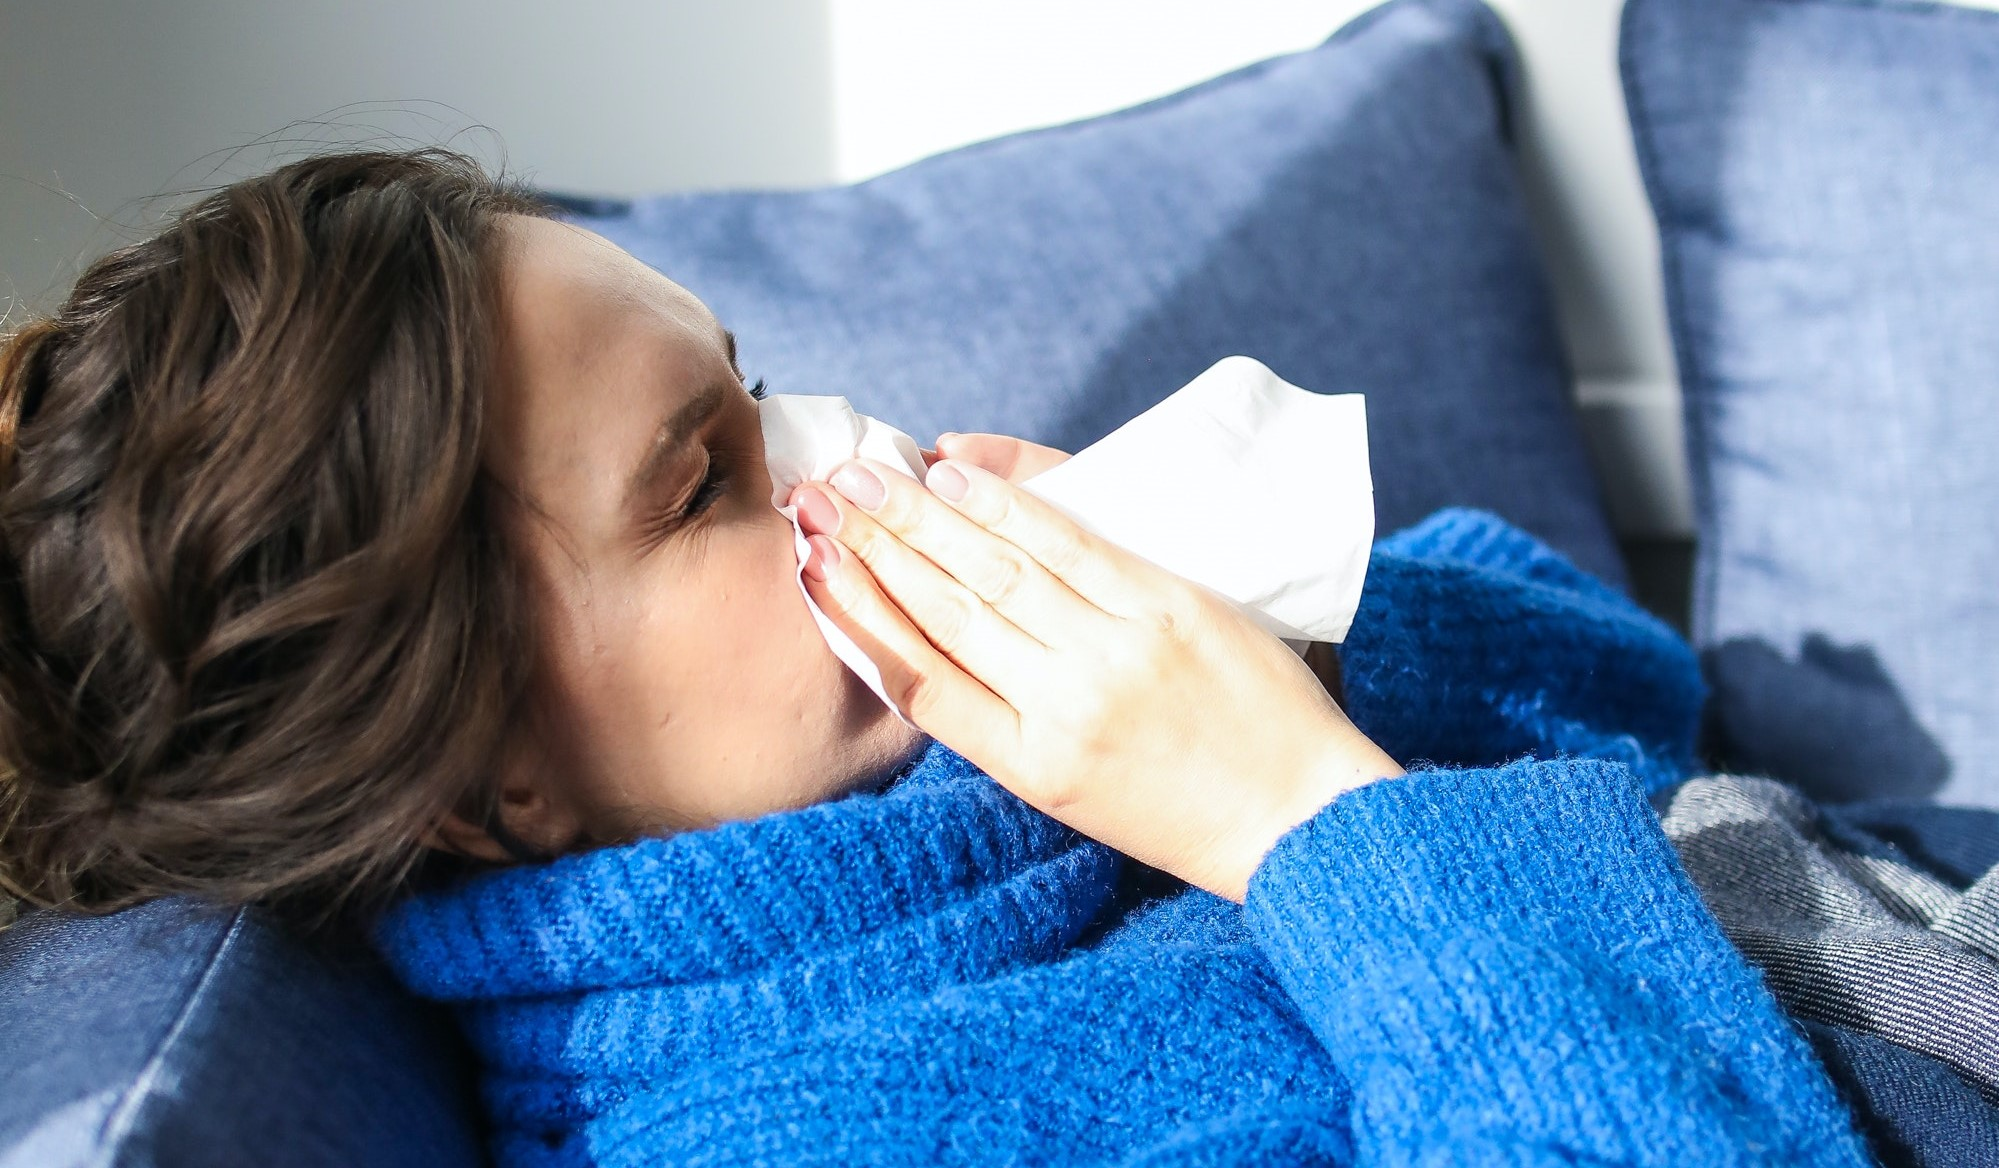 Ivy leaf extract relieves cough associated with thick mucus